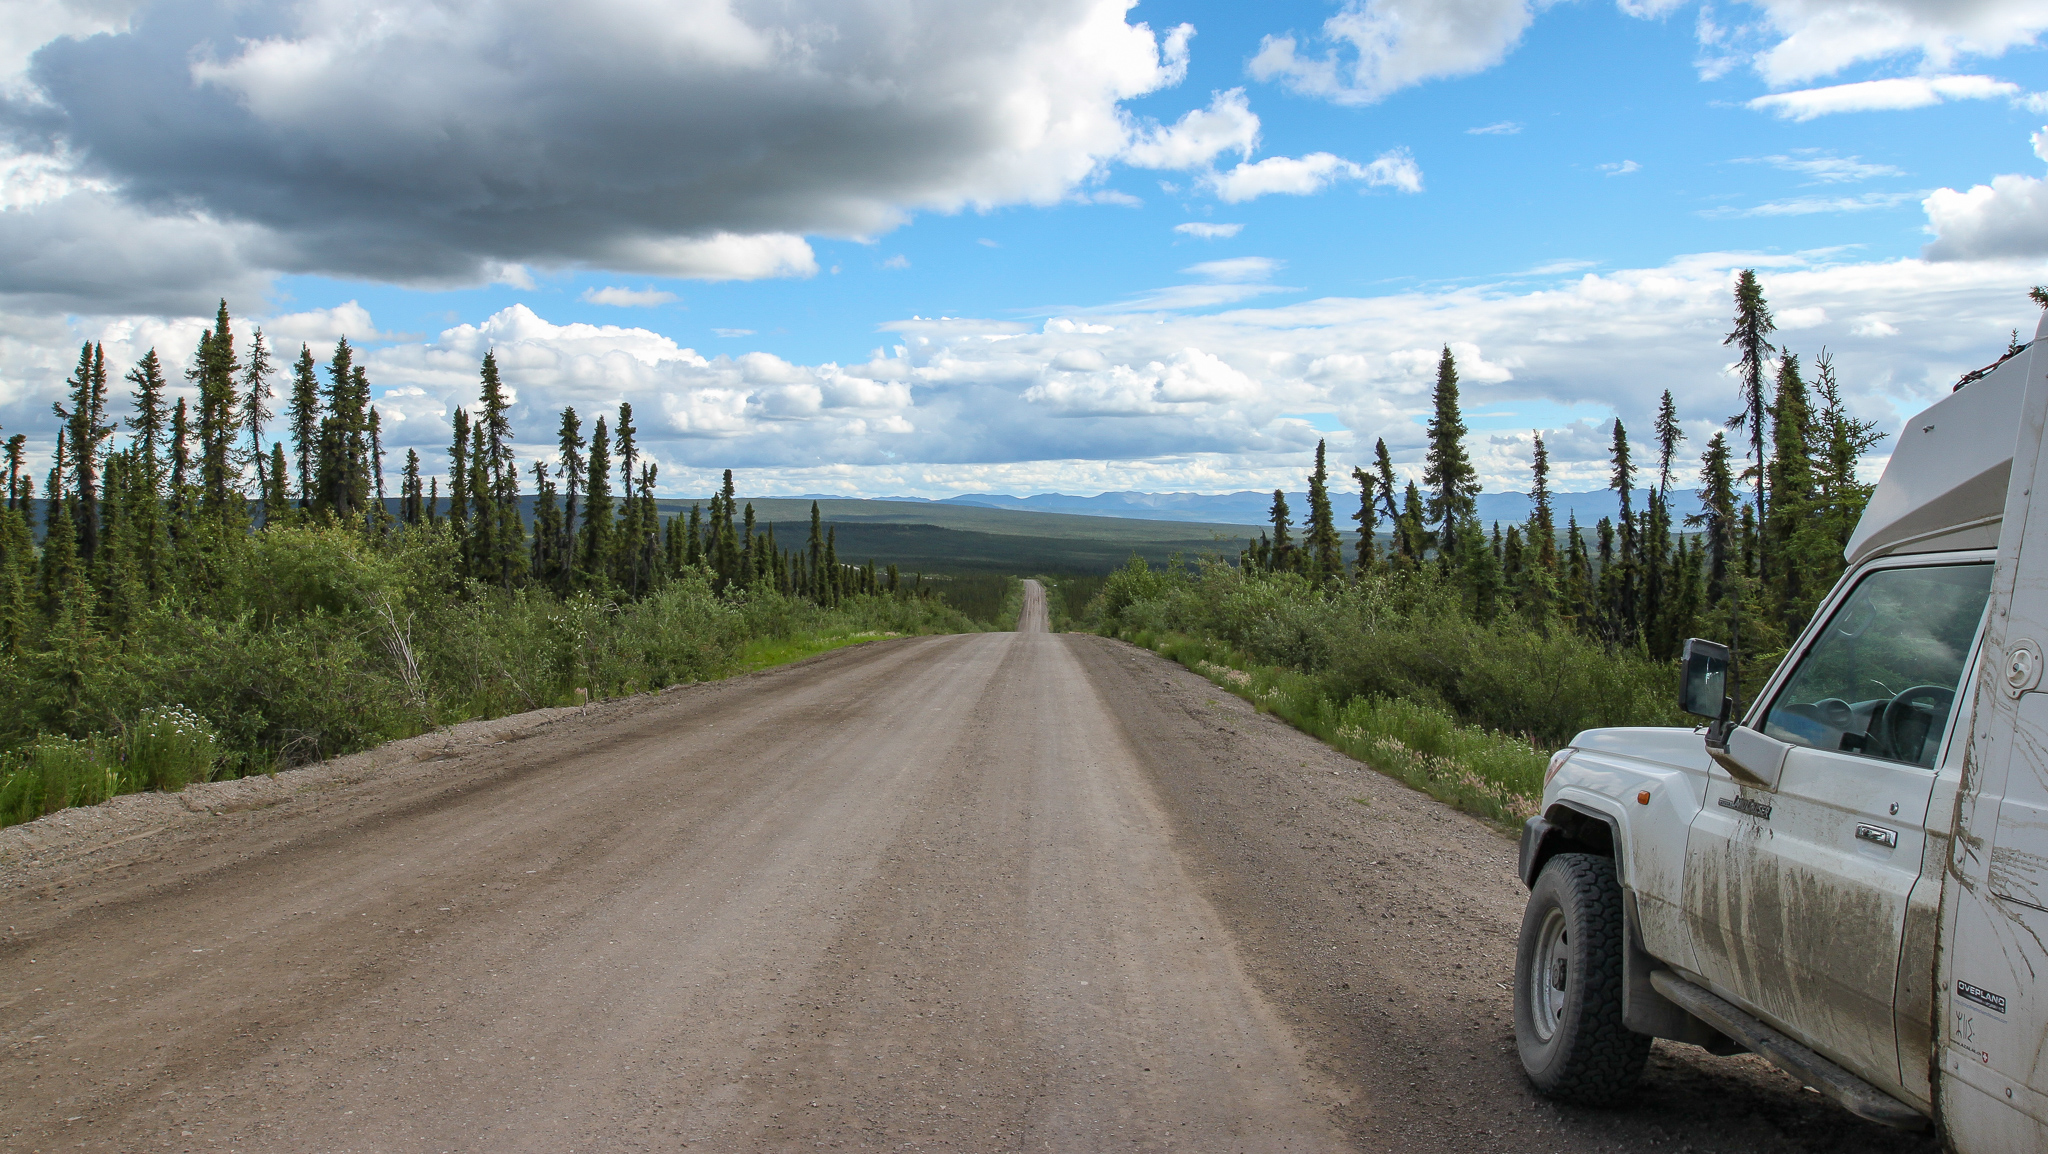 CONSTRUCTION OF THE DEMPSTER HIGHWAY BEGAN IN 1959. IT REACHED INUVIK BY 1979. ONLY IN WINTER, ON THE ICE ROAD THROUGH THE MACKENZIE DELTA, WAS IT POSSIBLE TO REACH THE MORE NORTHERN SETTLEMENT OF TUKTOYAKTUK, SINCE OUR VISIT IN 2016 AN ALL-WEATHER ROAD HAS NOW BEEN COMPLETED, LINKING INUVIK TO TUKTOYAKTUK.